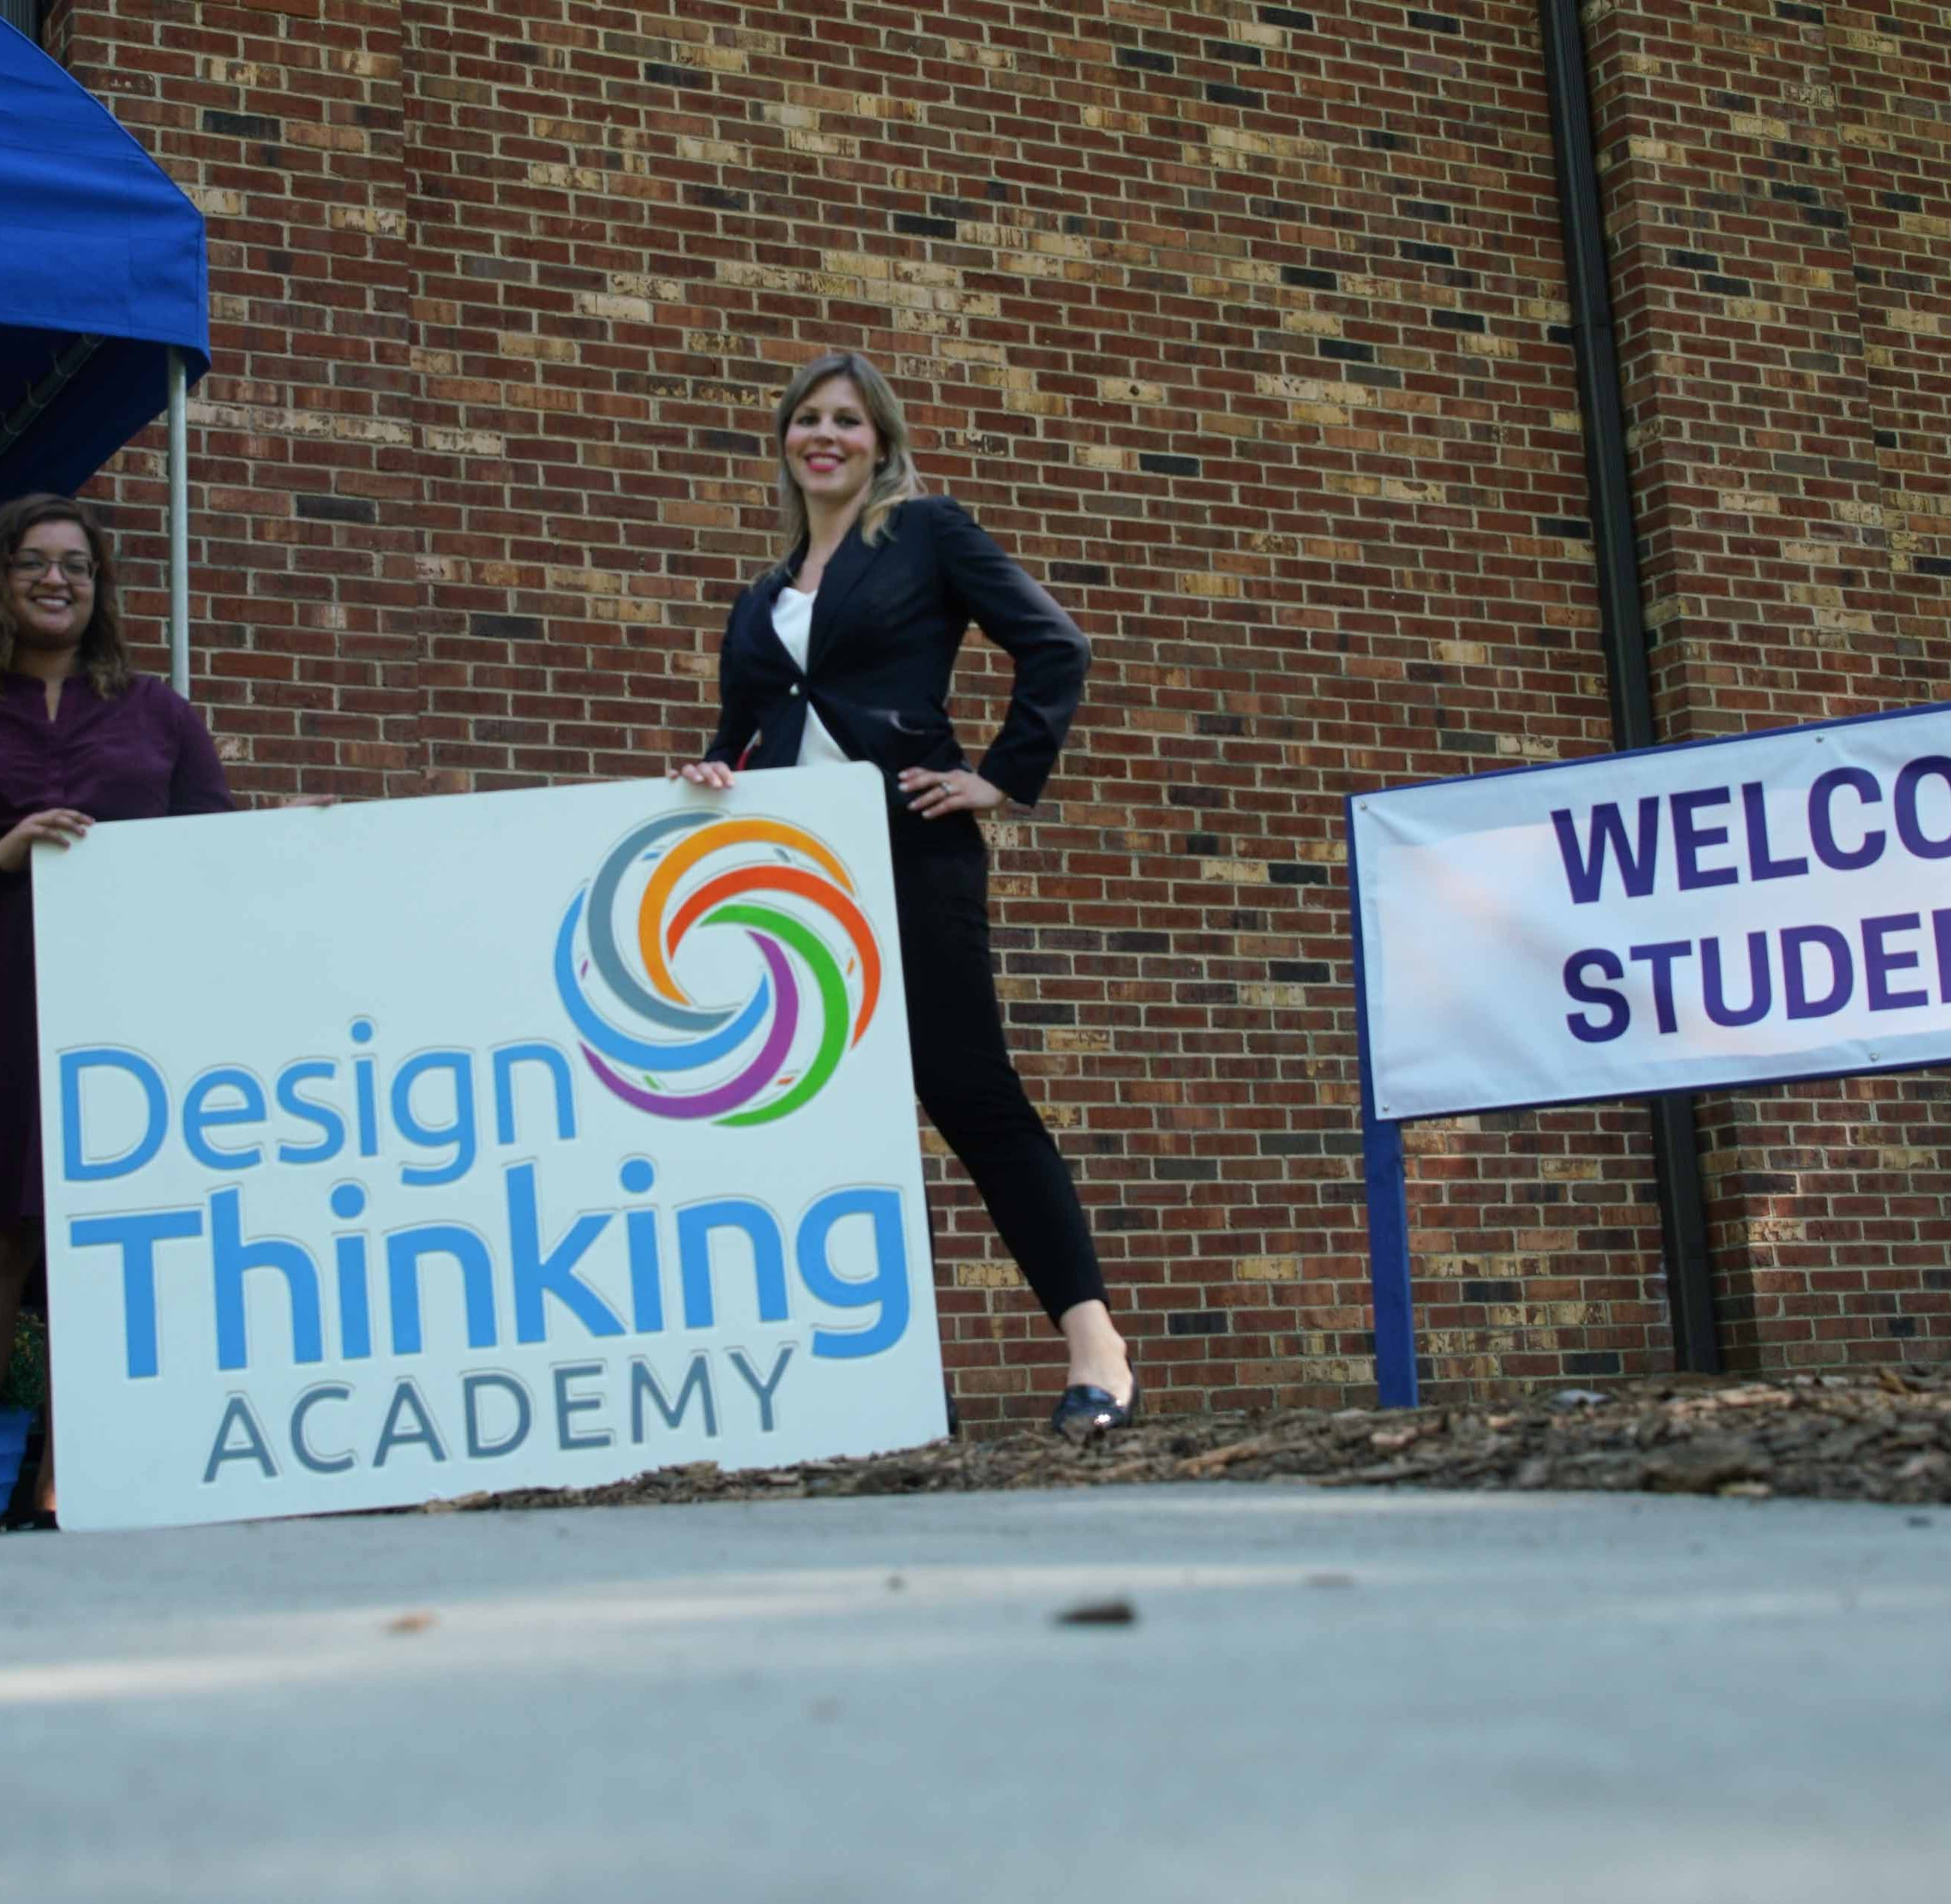 Design Thinking Academy to close, leaving parents scrambling to find choice options